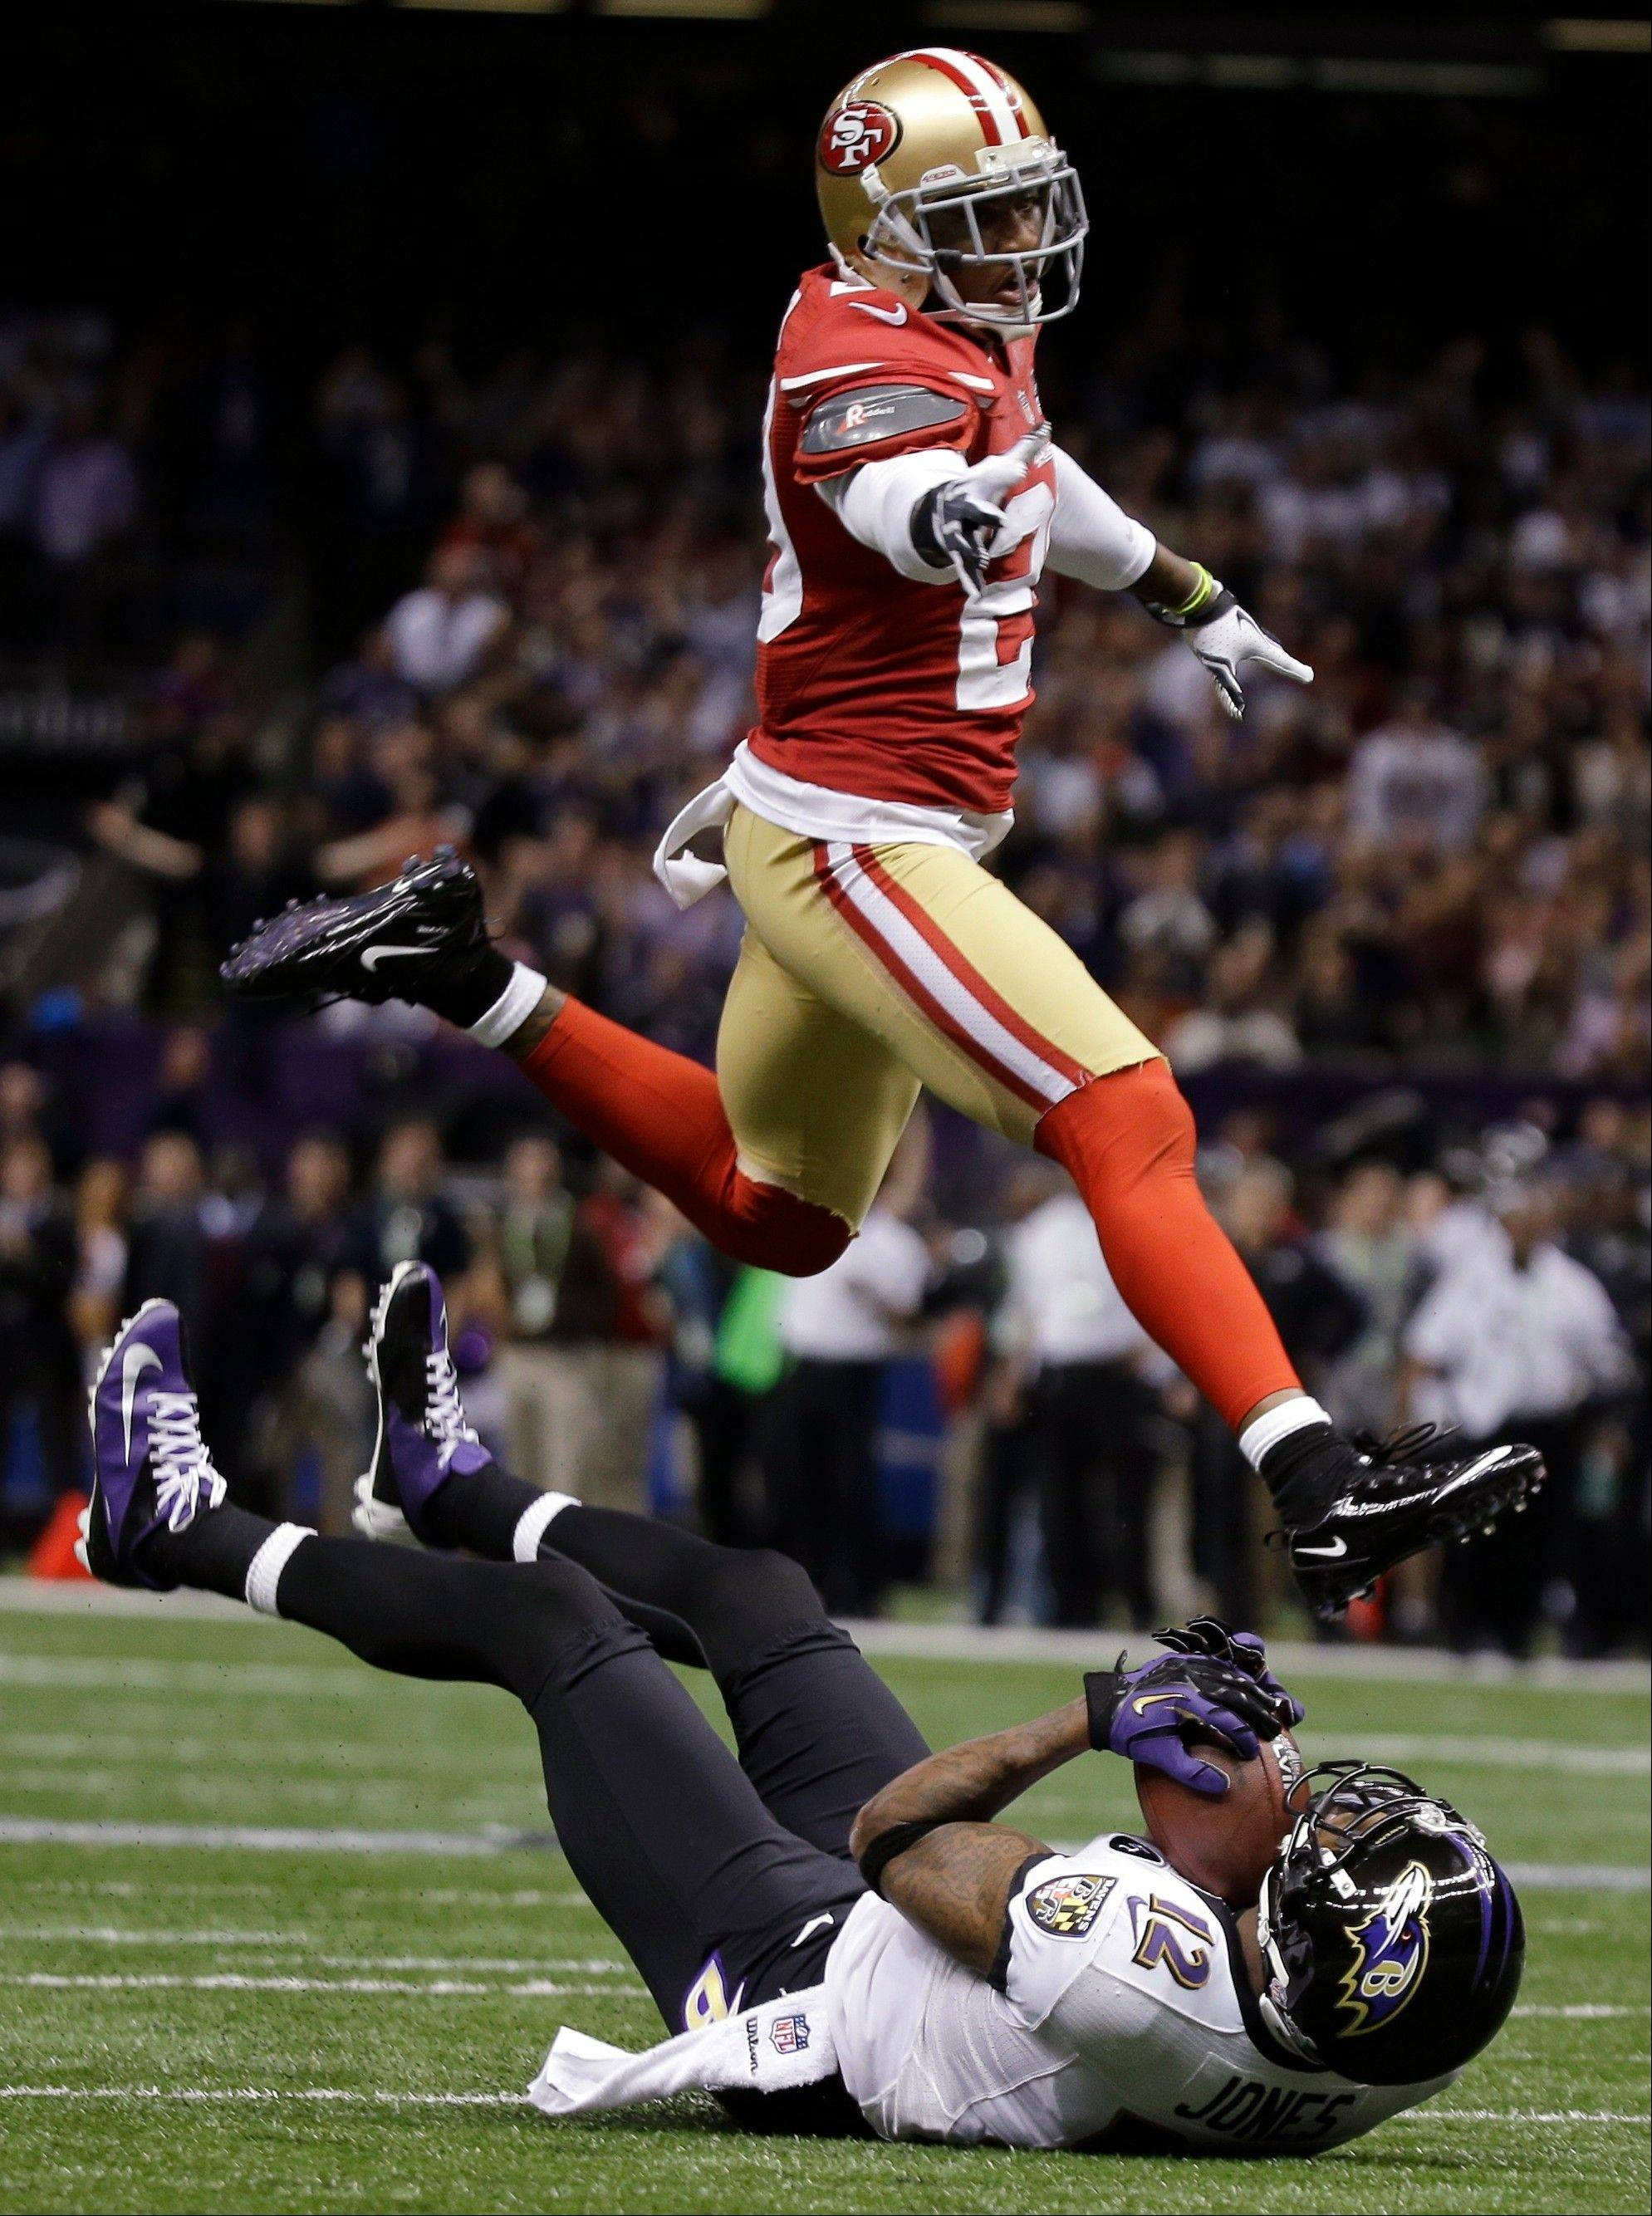 Baltimore Ravens wide receiver Jacoby Jones (12) catches the ball on the turf during a 56-yard touchdown reception in front of San Francisco 49ers defensive back Chris Culliver (29) in the first half.